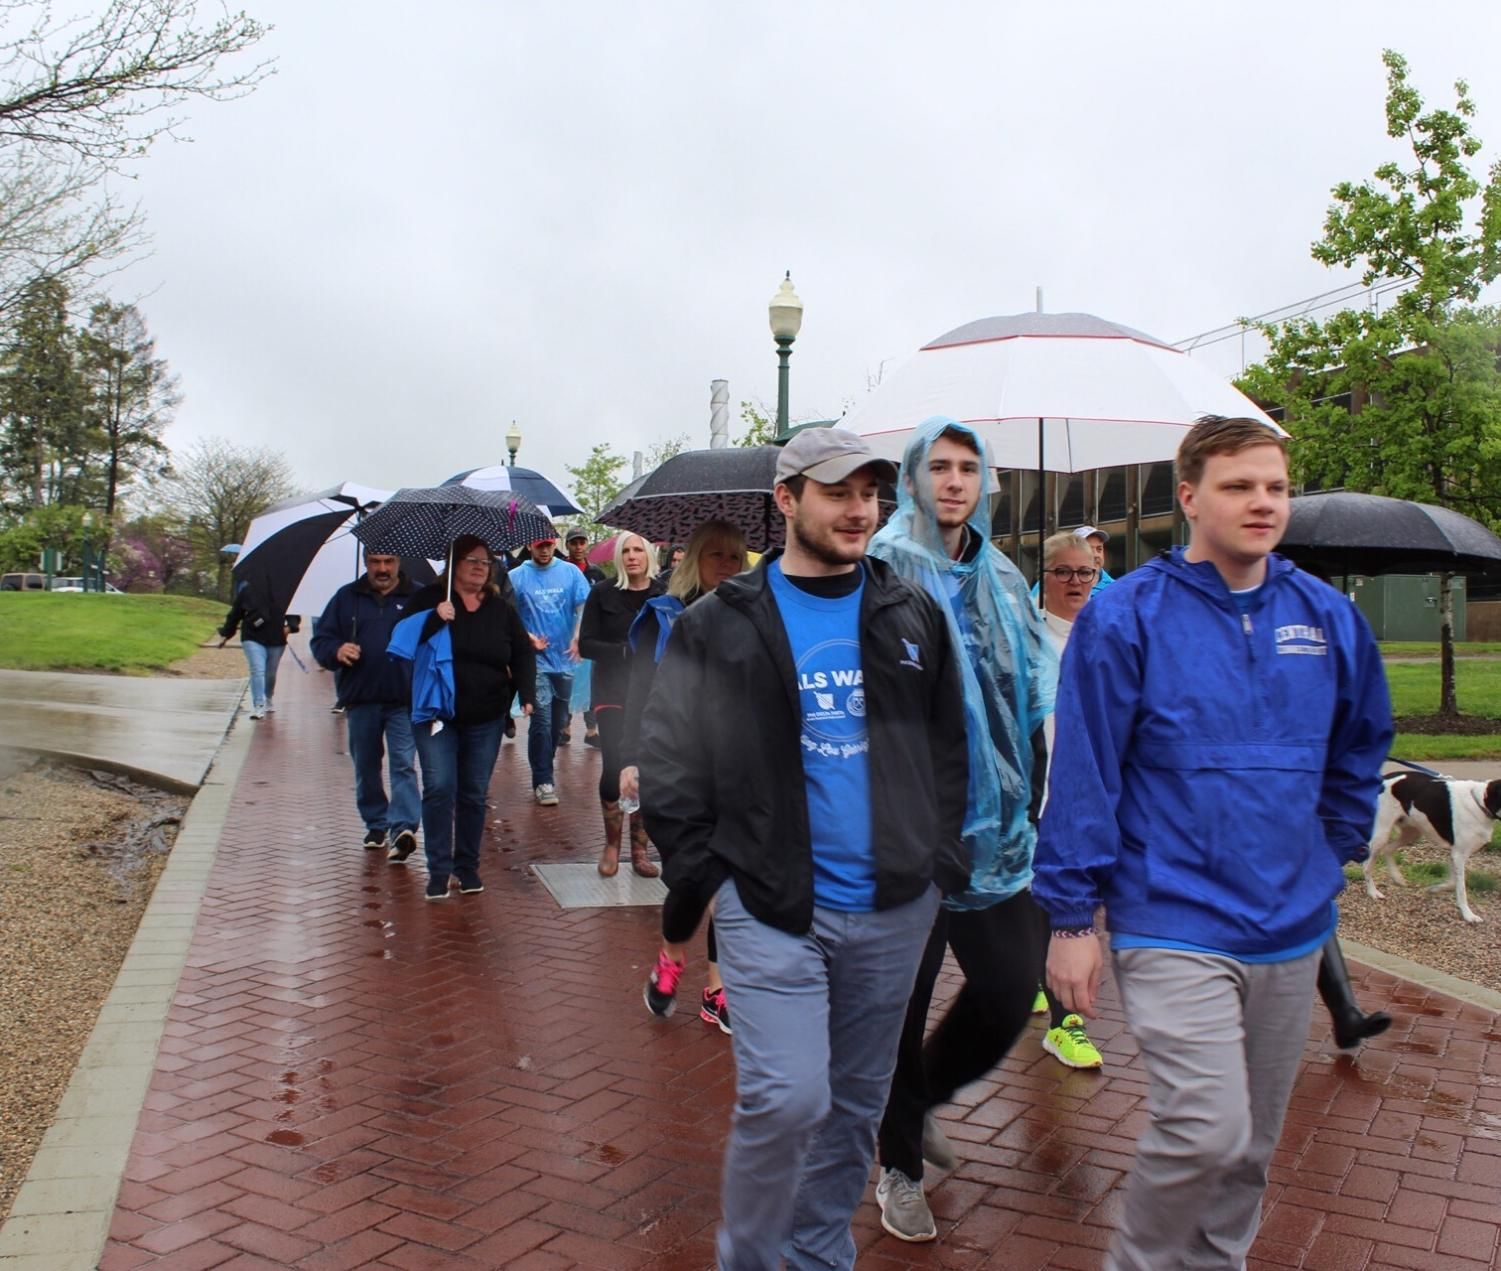 Phi+Delta+Theta+and+the+SGA+continued+their+tradition+Sunday+of+hosting+an+annual+ALS+Walk.